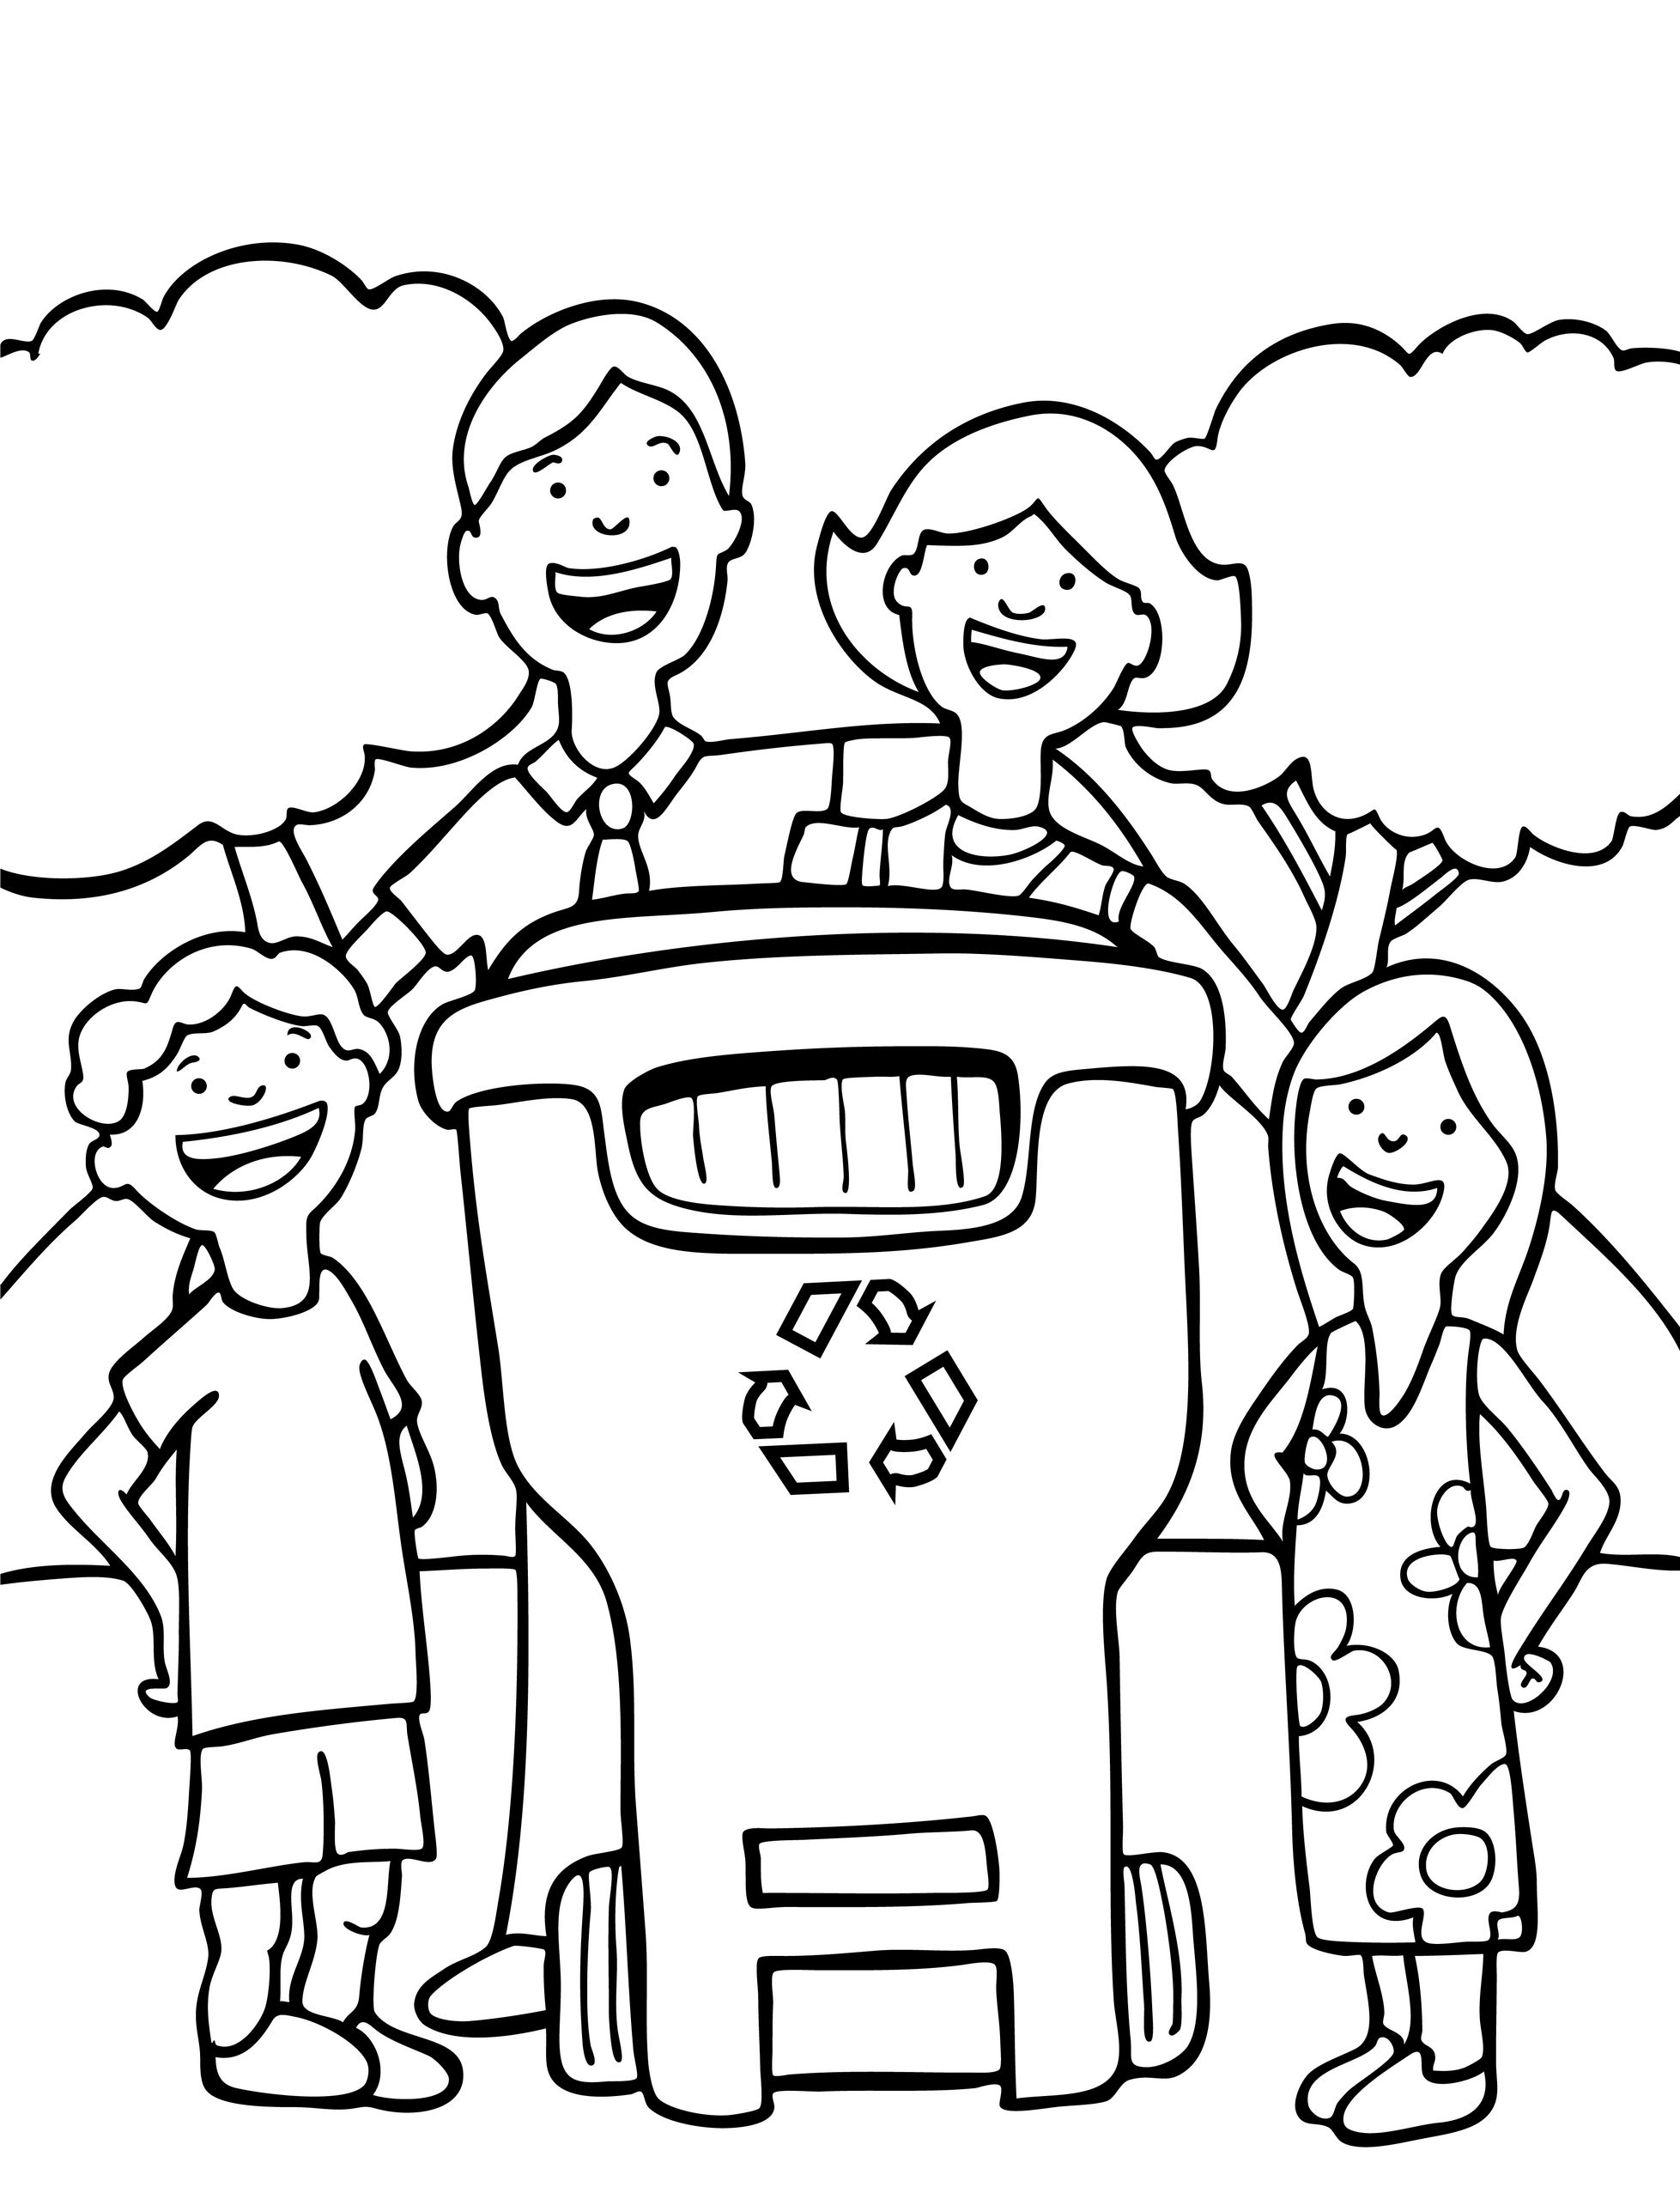 Recycling Items Coloring Pages